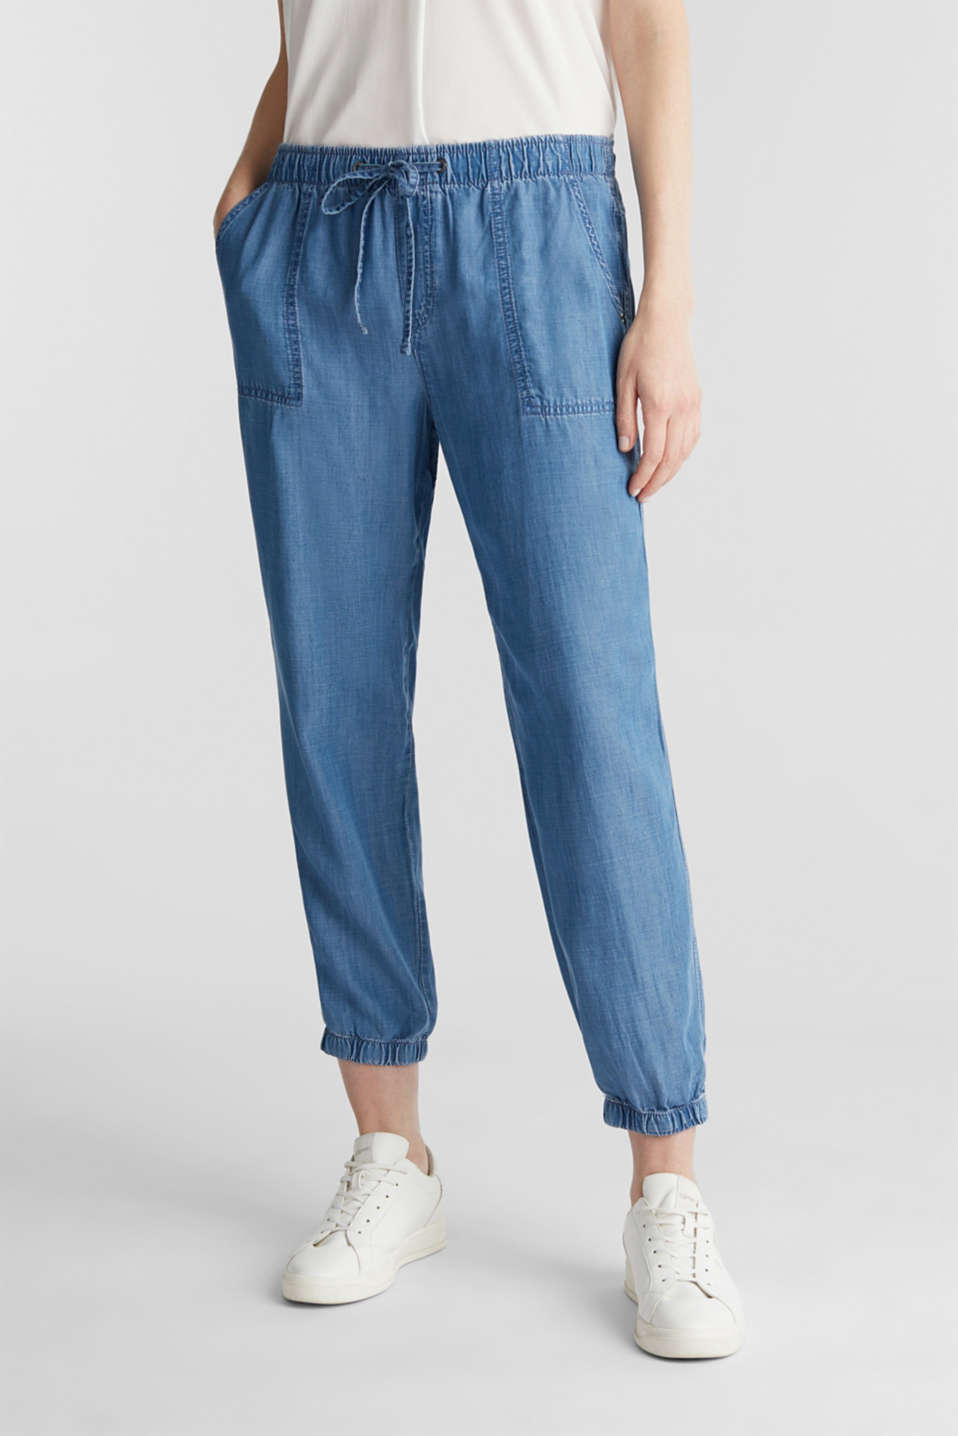 Esprit - Denim tracksuit bottoms made of lyocell